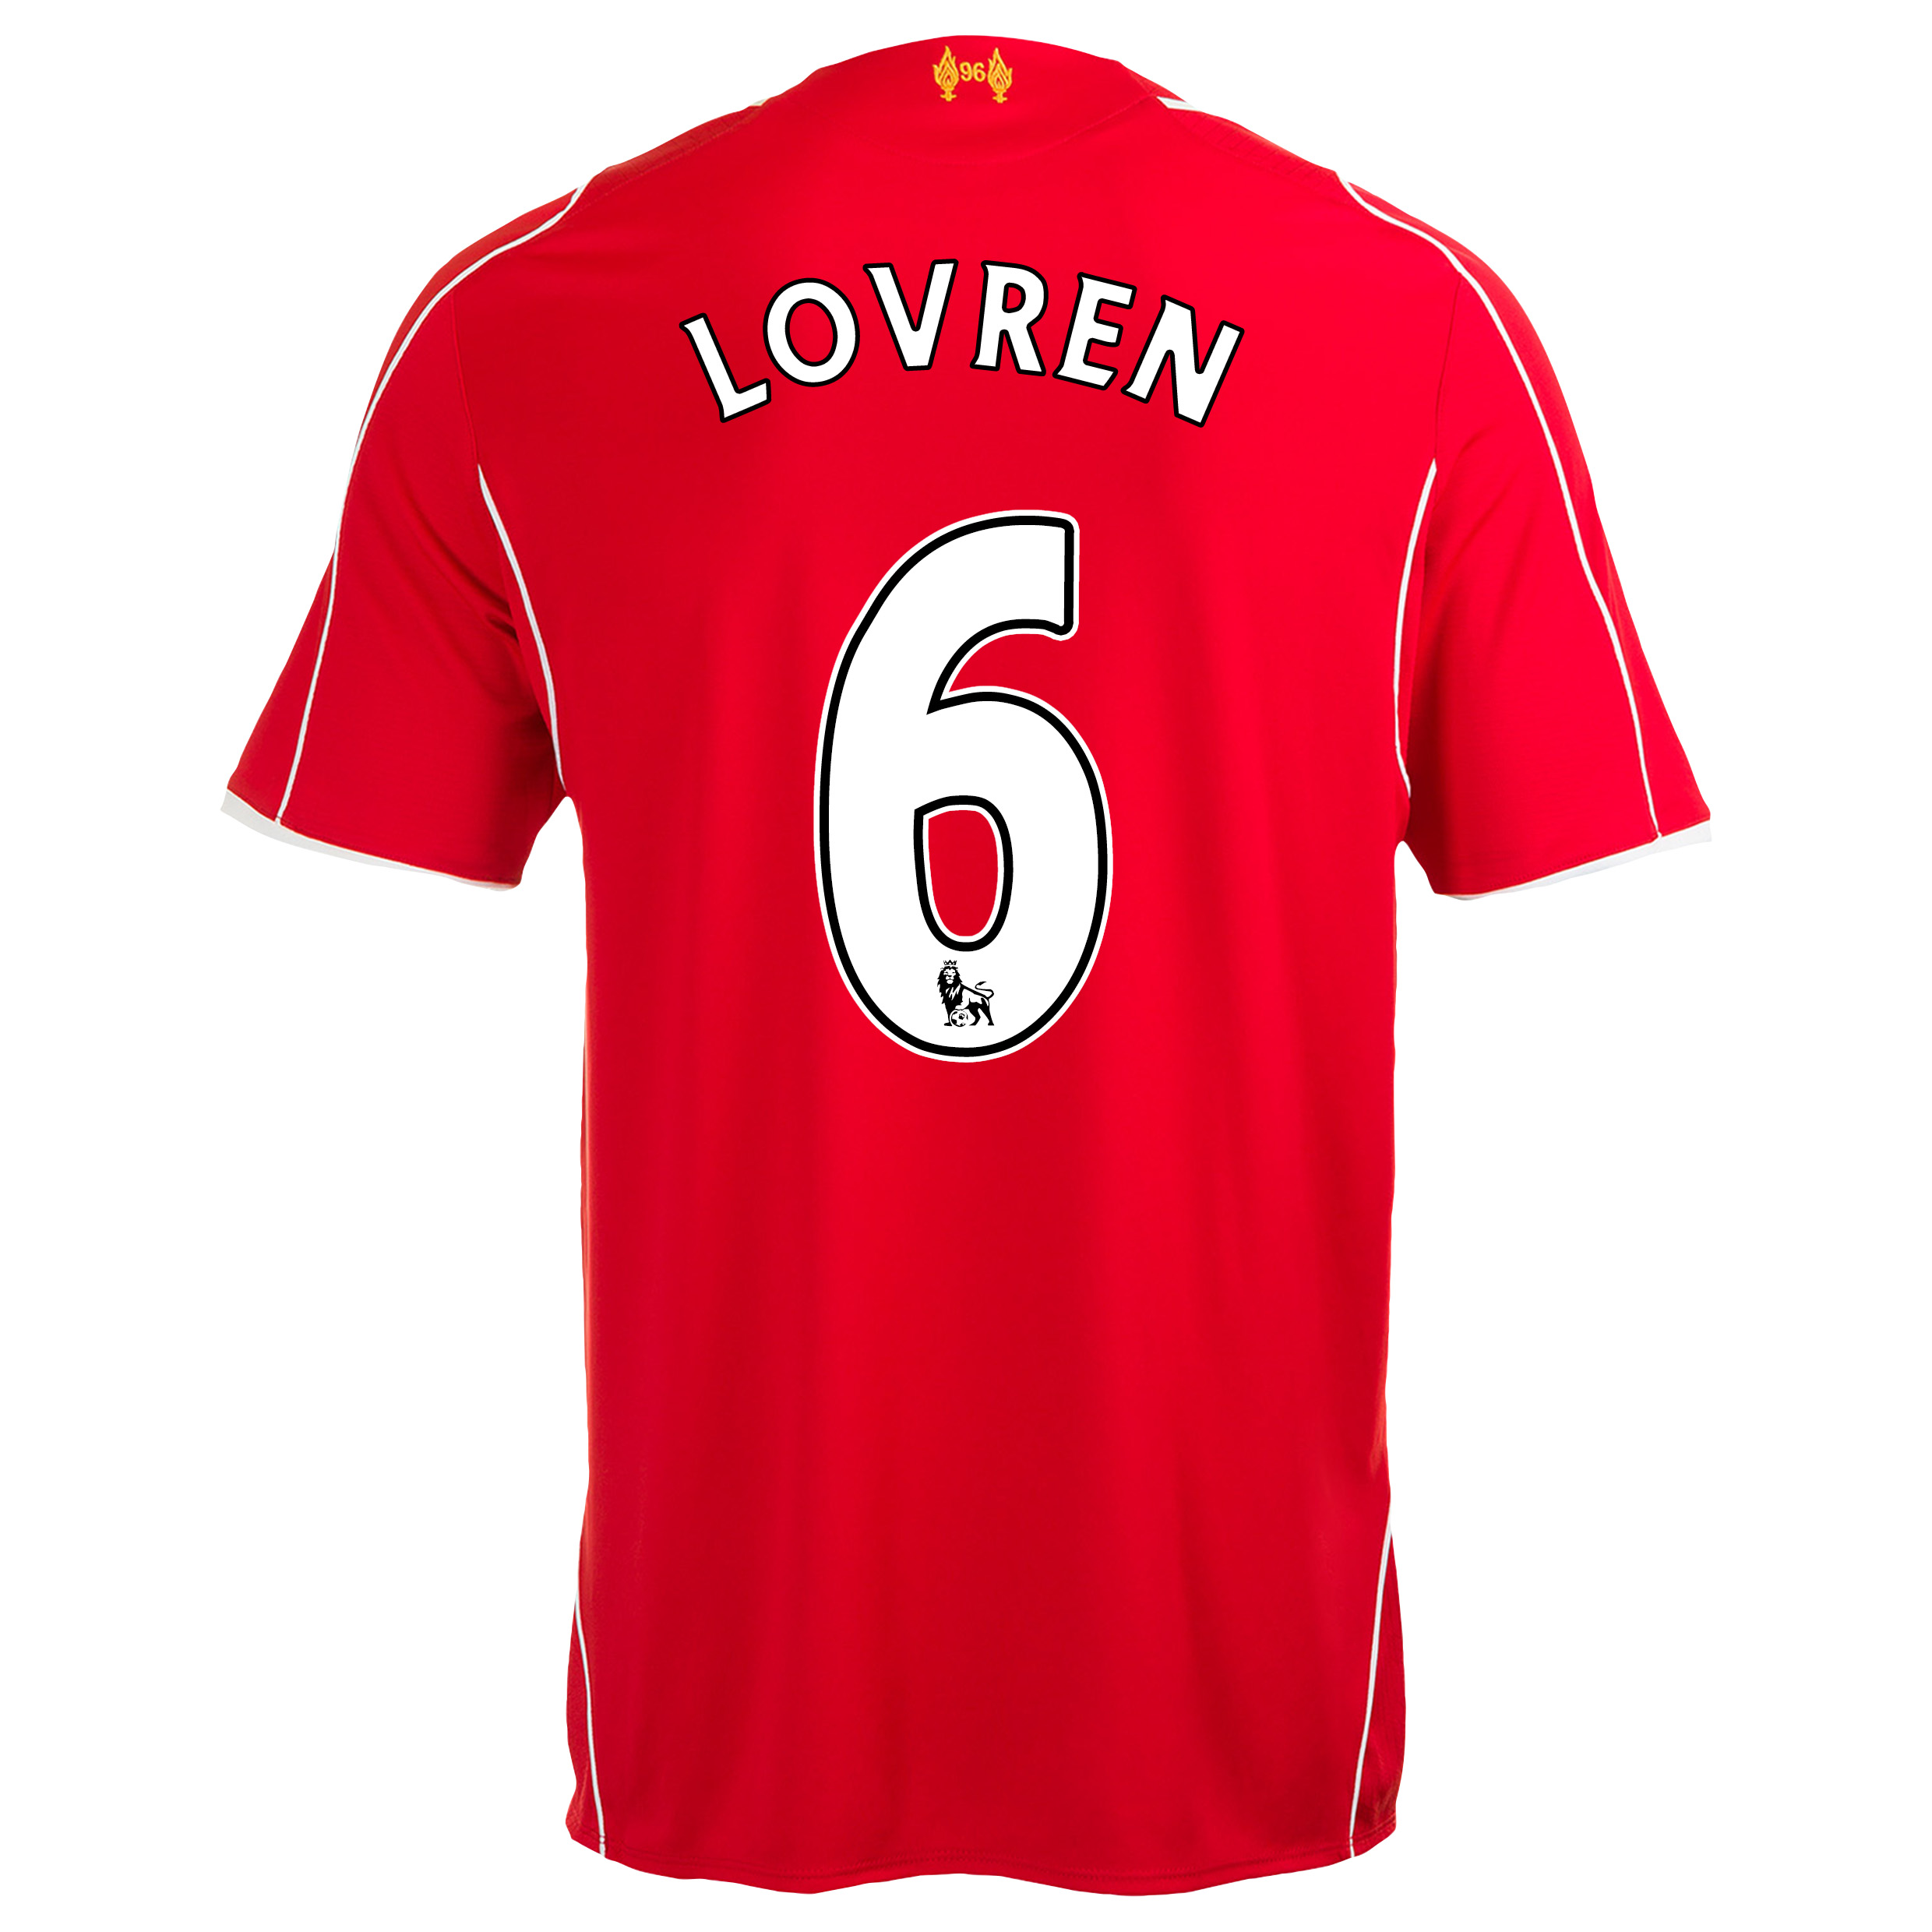 Liverpool Home Shirt 2014/15 with Lovren 6 printing